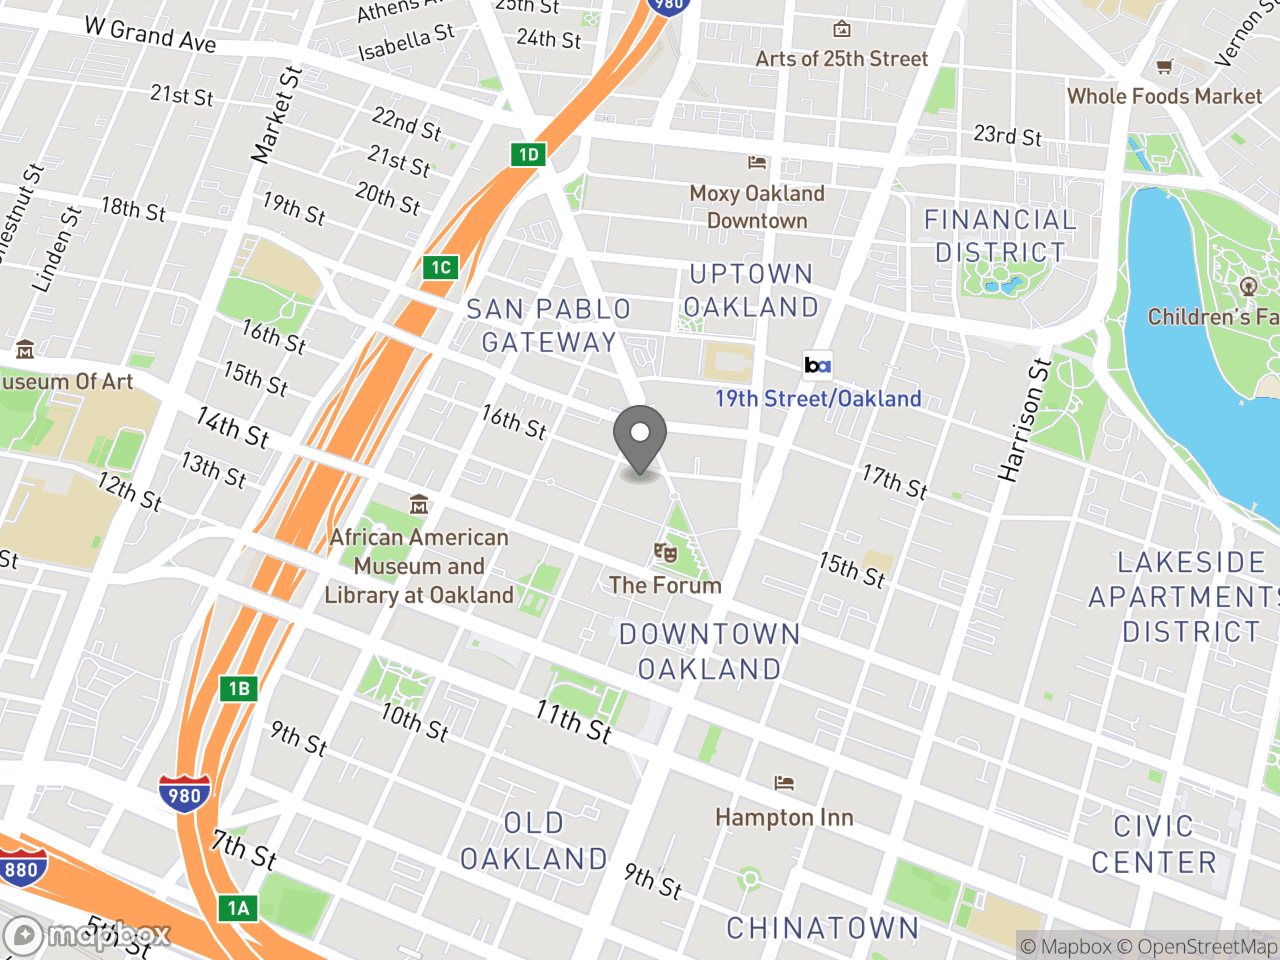 Map location for Services for Homeowners, located at 250 Frank H Ogawa Plaza in Oakland, CA 94612